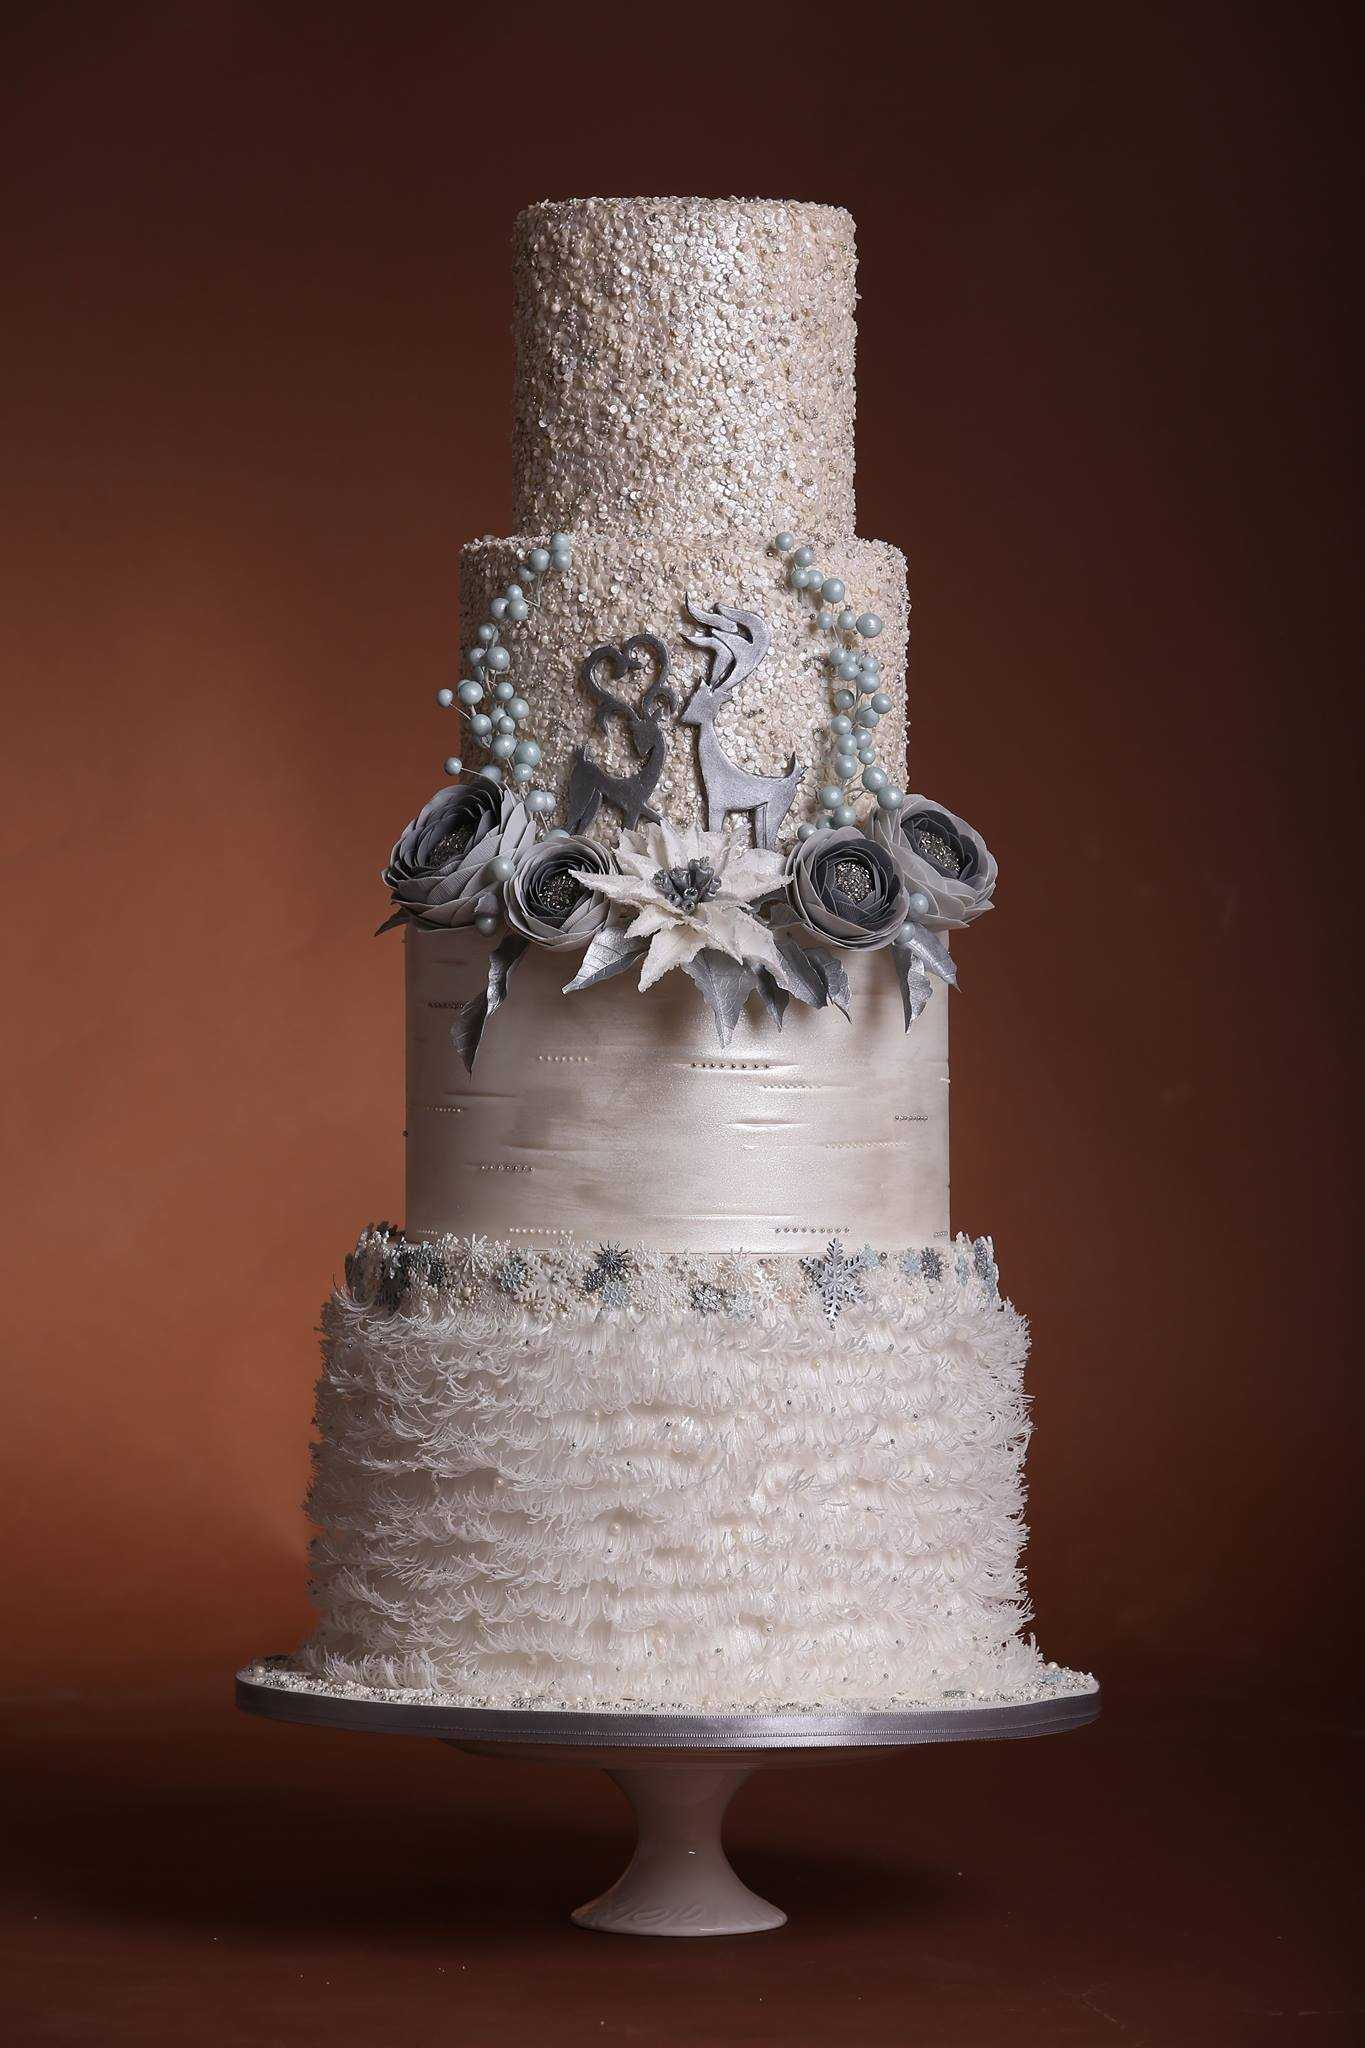 Sparkling white Christmas wedding cake